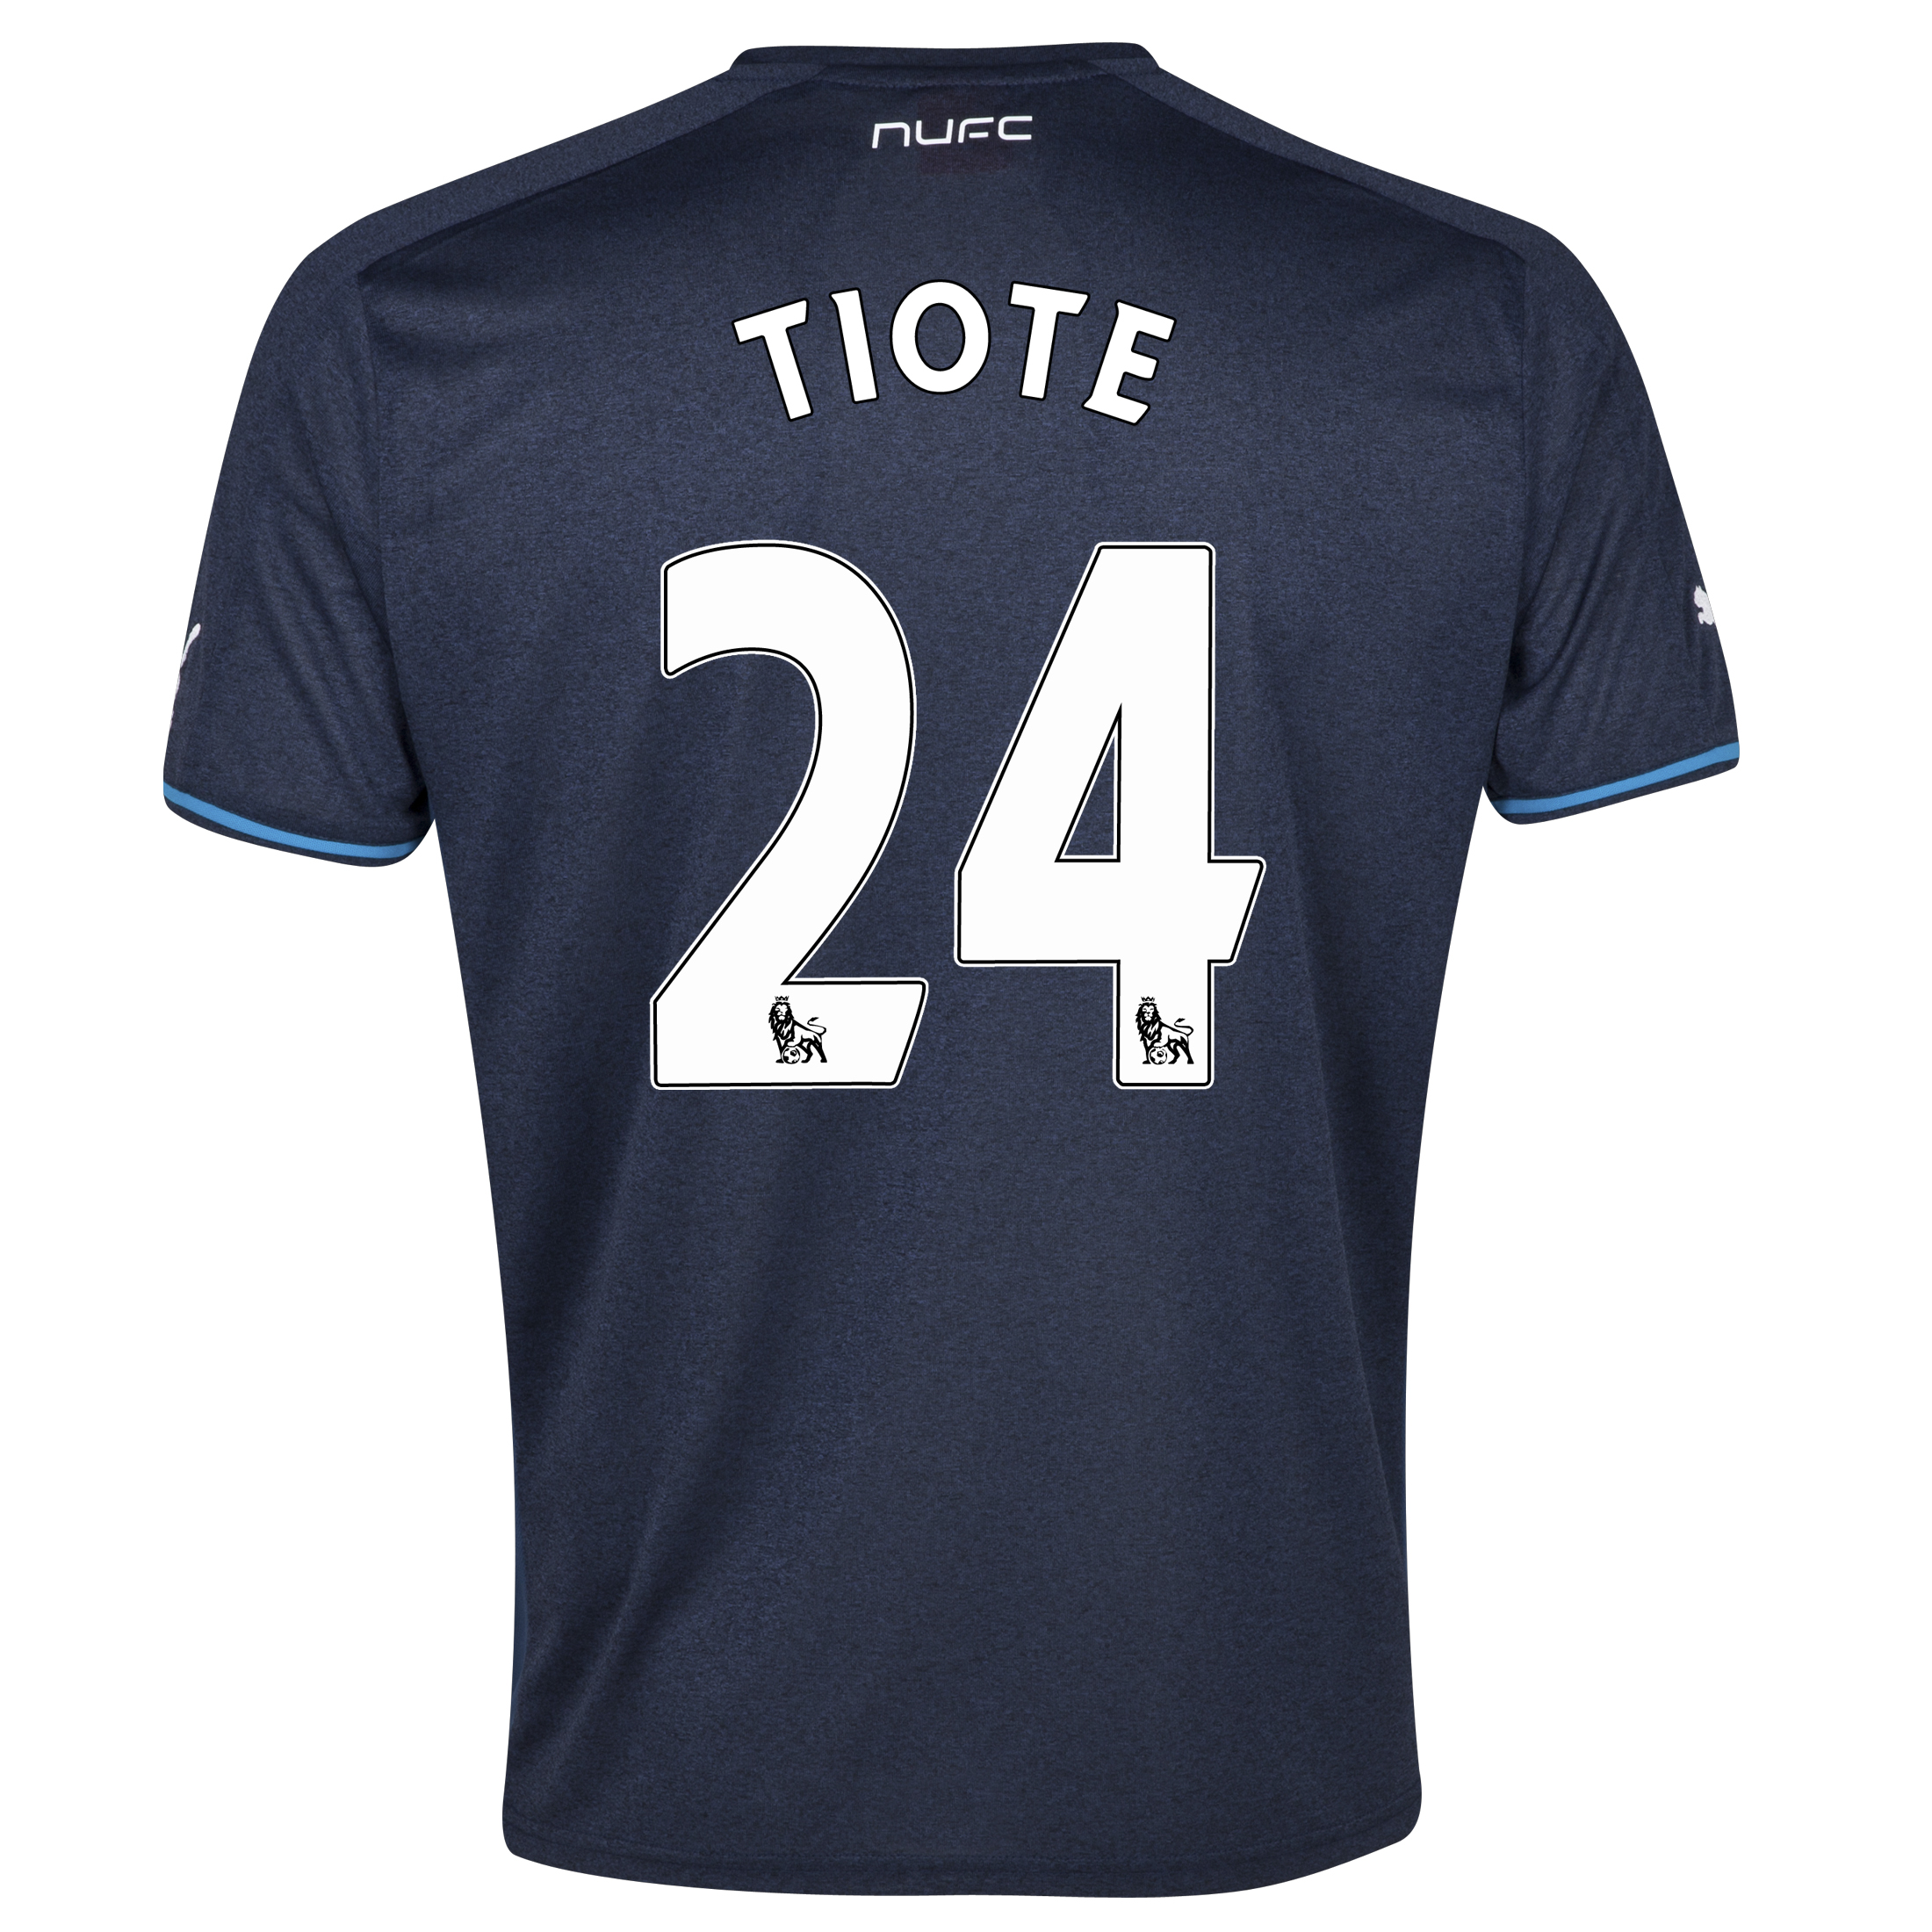 Newcastle United Away Shirt 2013/14 - kids with Tiote 24 printing